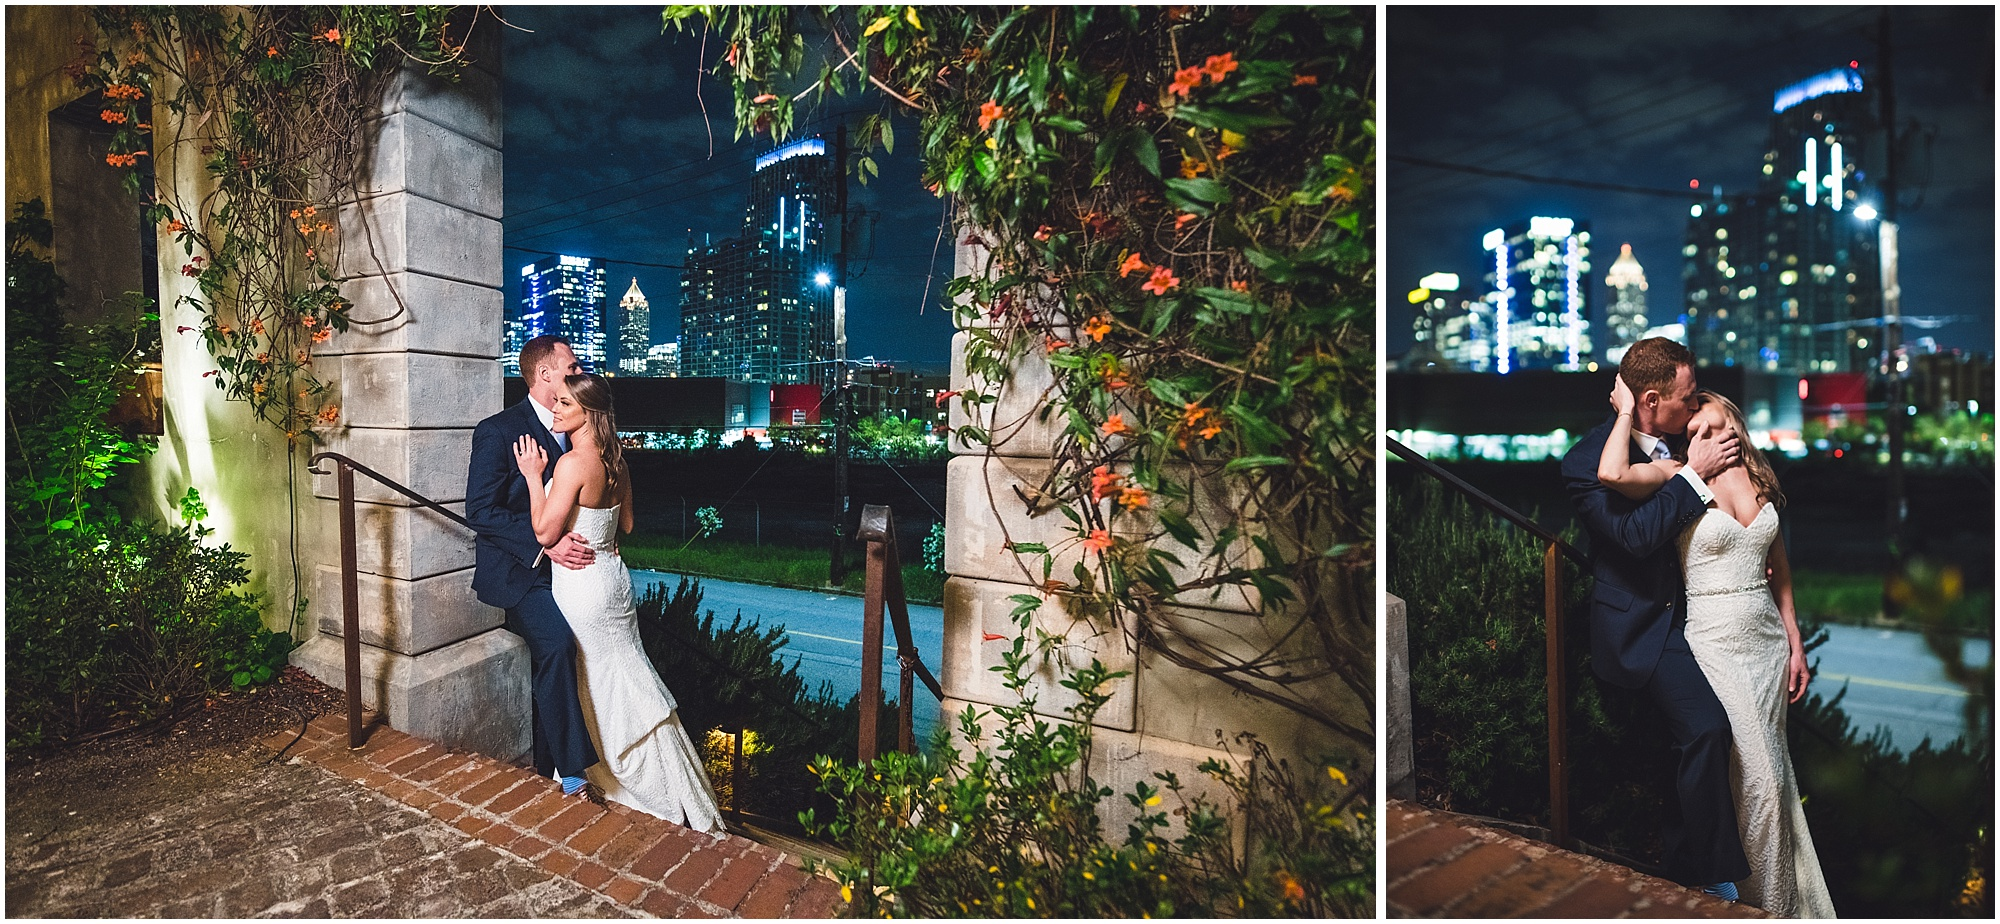 Portraits with Atlanta night skyline